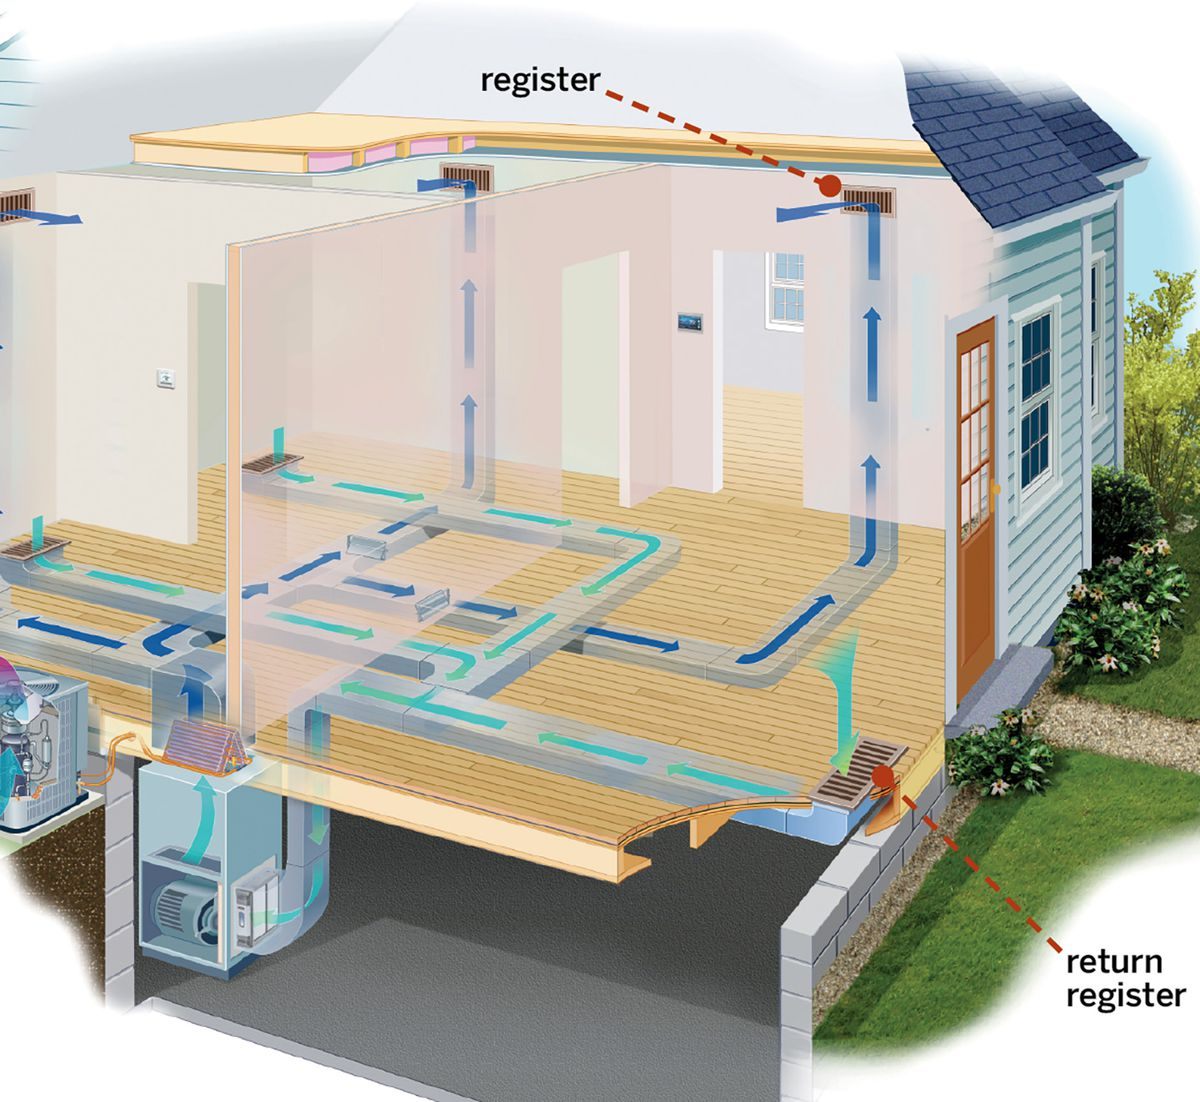 Central Air Conditioning Systems A Guide To Costs Types This Old House